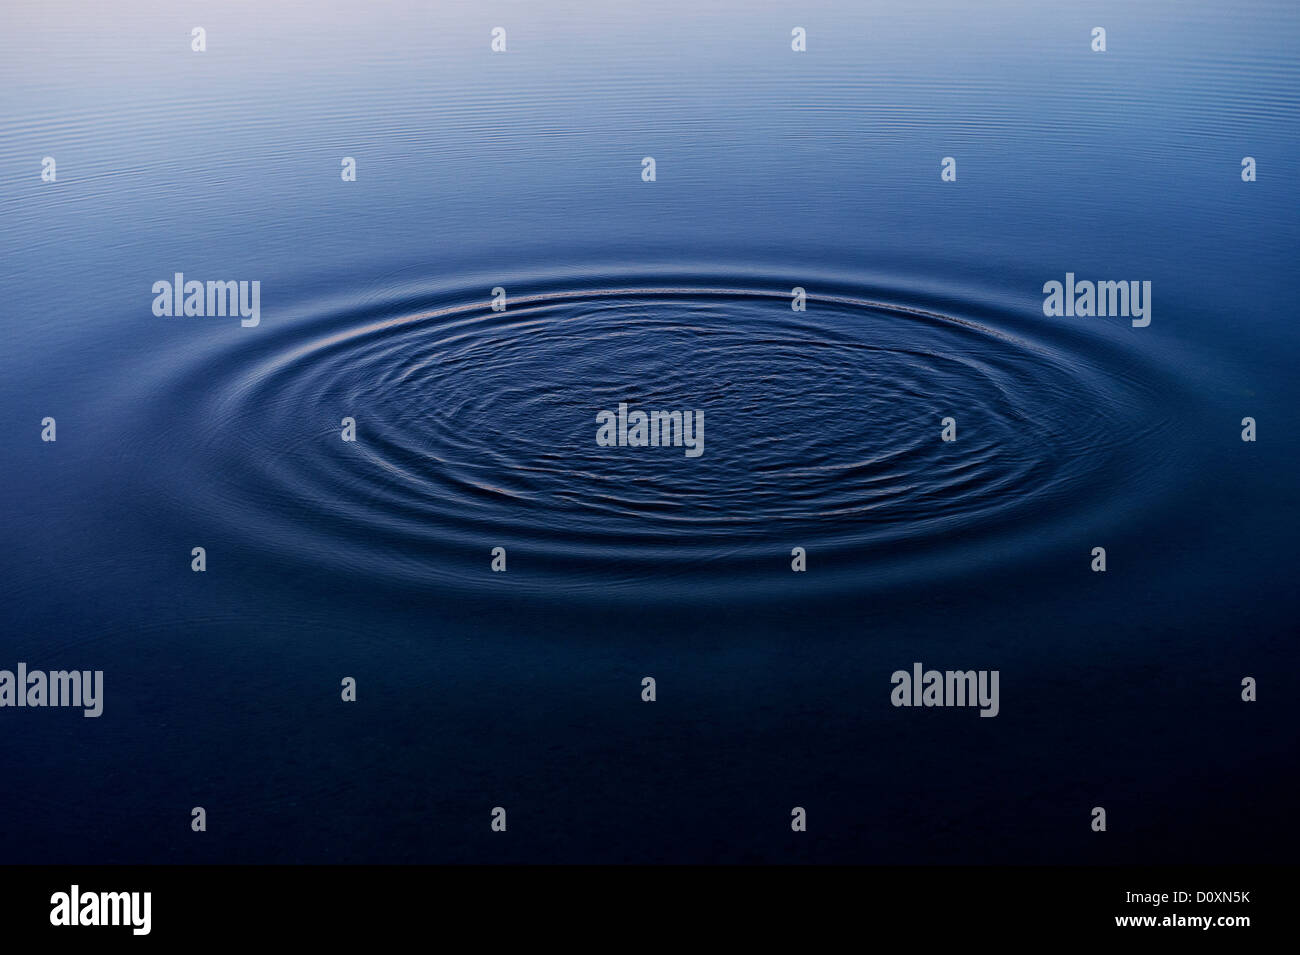 Ripples in water of lake - Stock Image